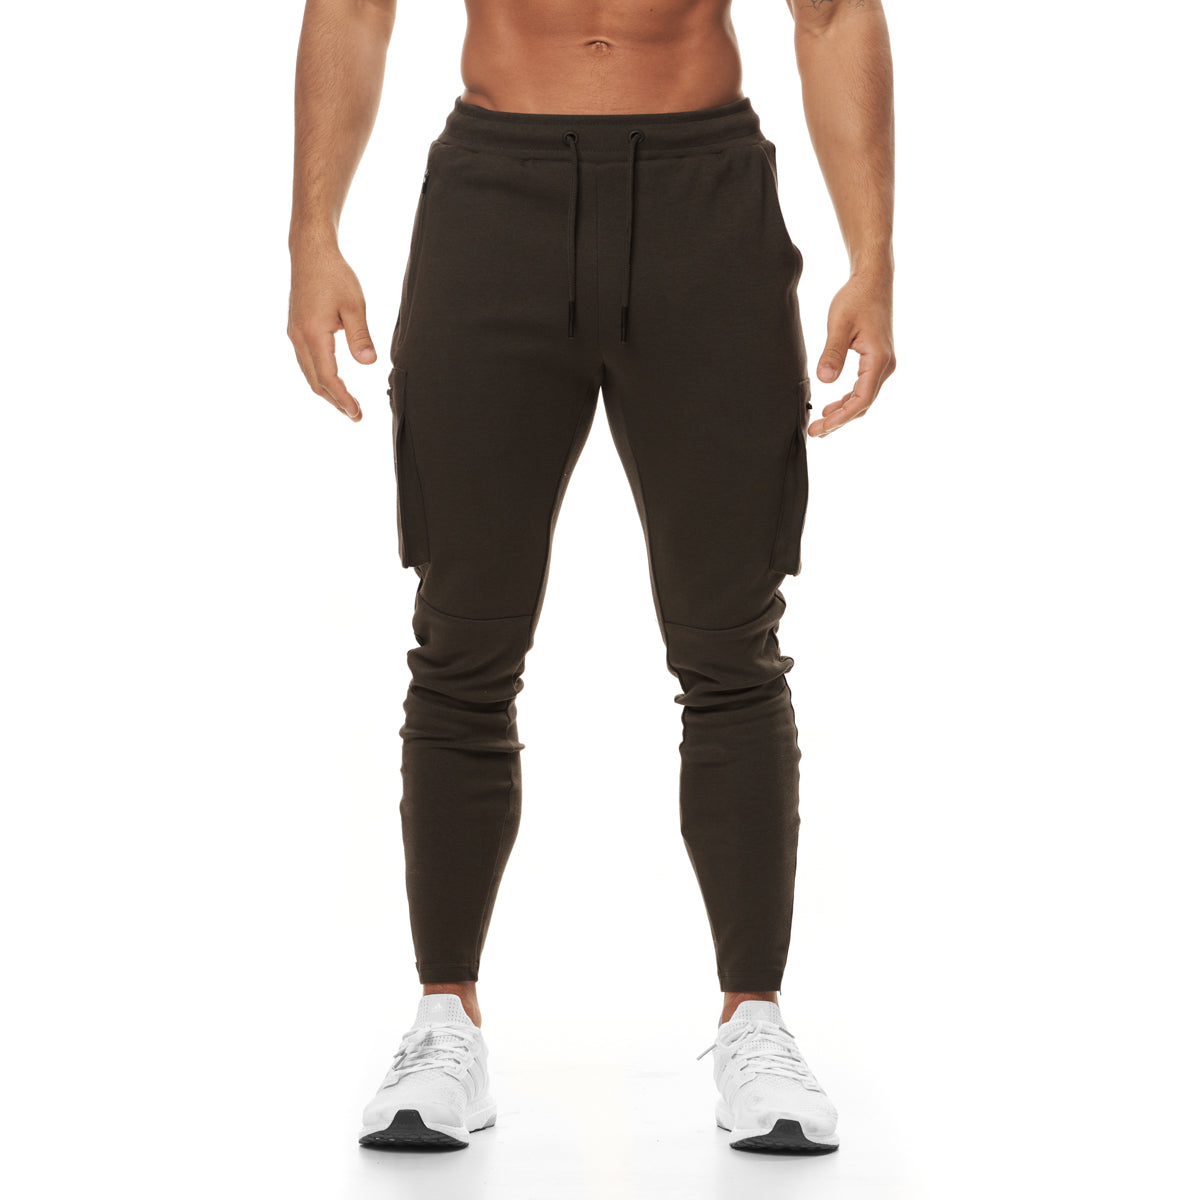 0400. Core Division Cargo Zip Jogger - Dark Earth